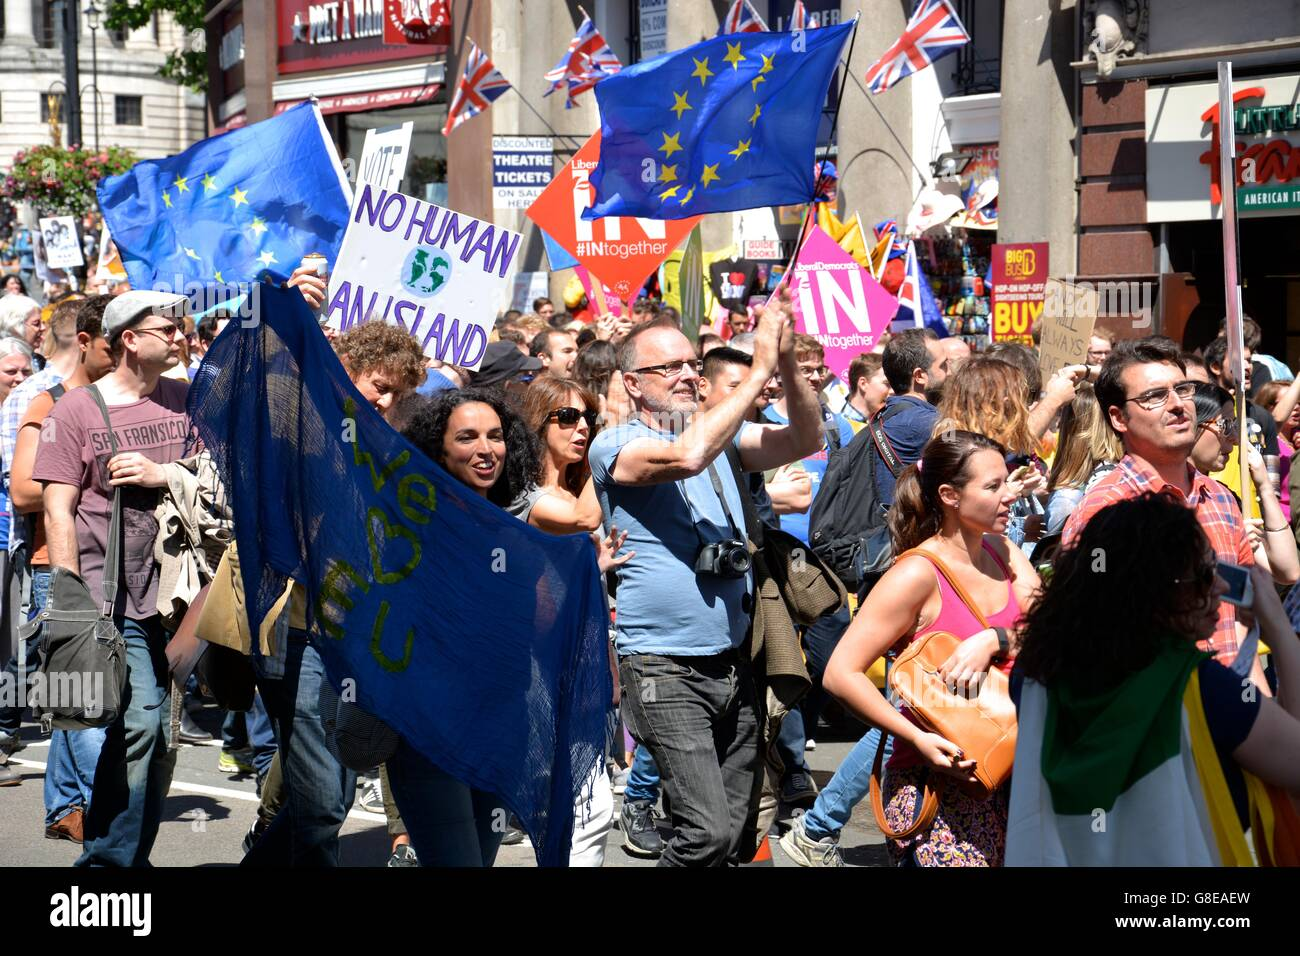 The March for Europe makes its way down Whitehall towards Parliament Square in Central London. - Stock Image